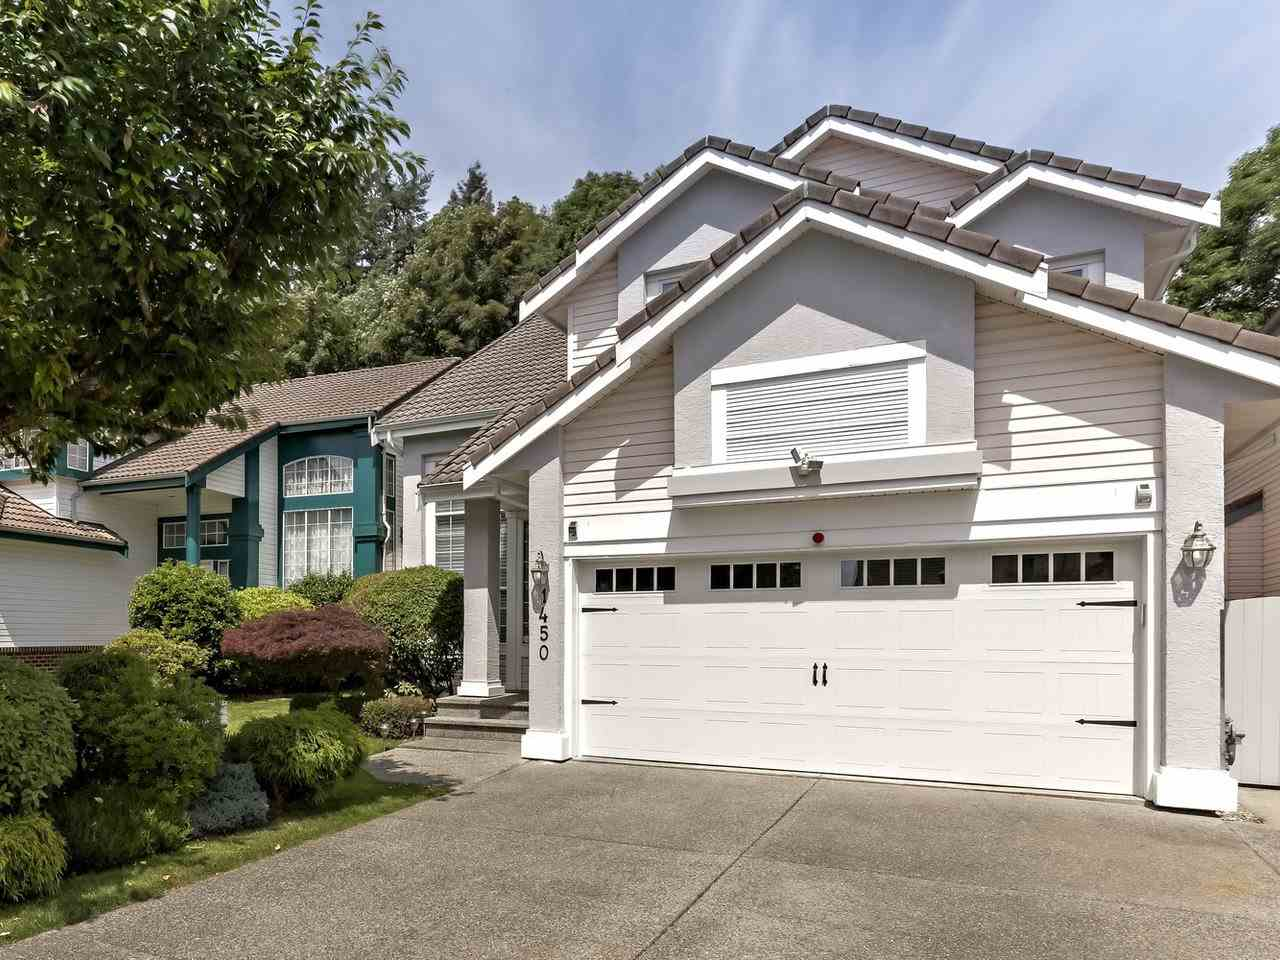 Removed: 1450 Rhine Crescent, Port Coquitlam, BC - Removed on 2019-06-29 09:21:28